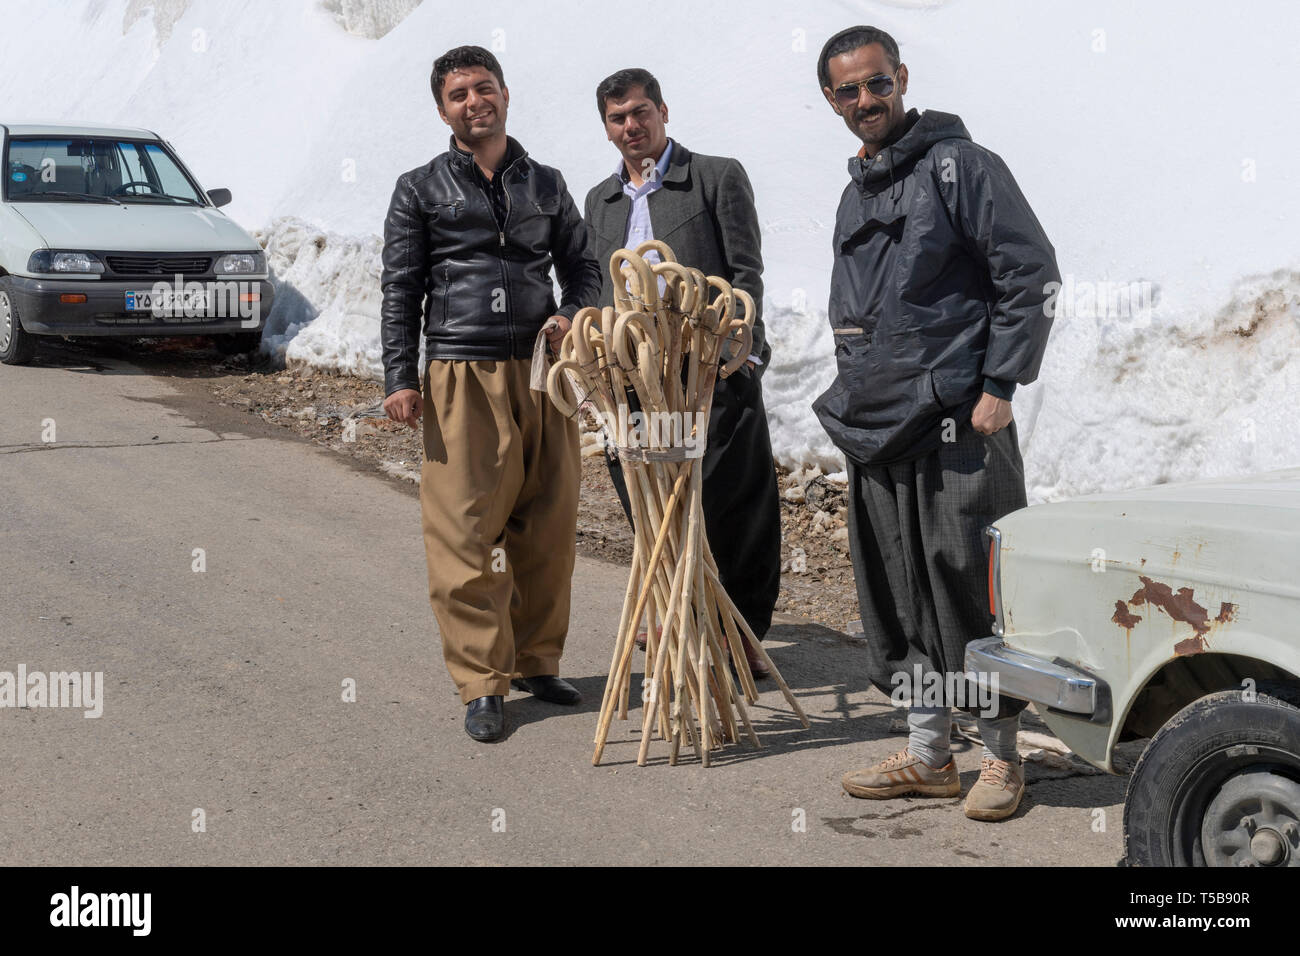 Men Selling Canes To Couriers To Help Them Walk To Iraq In The Snow In Winter, Uraman Valley, Kurdistan Province, Iran - Stock Image